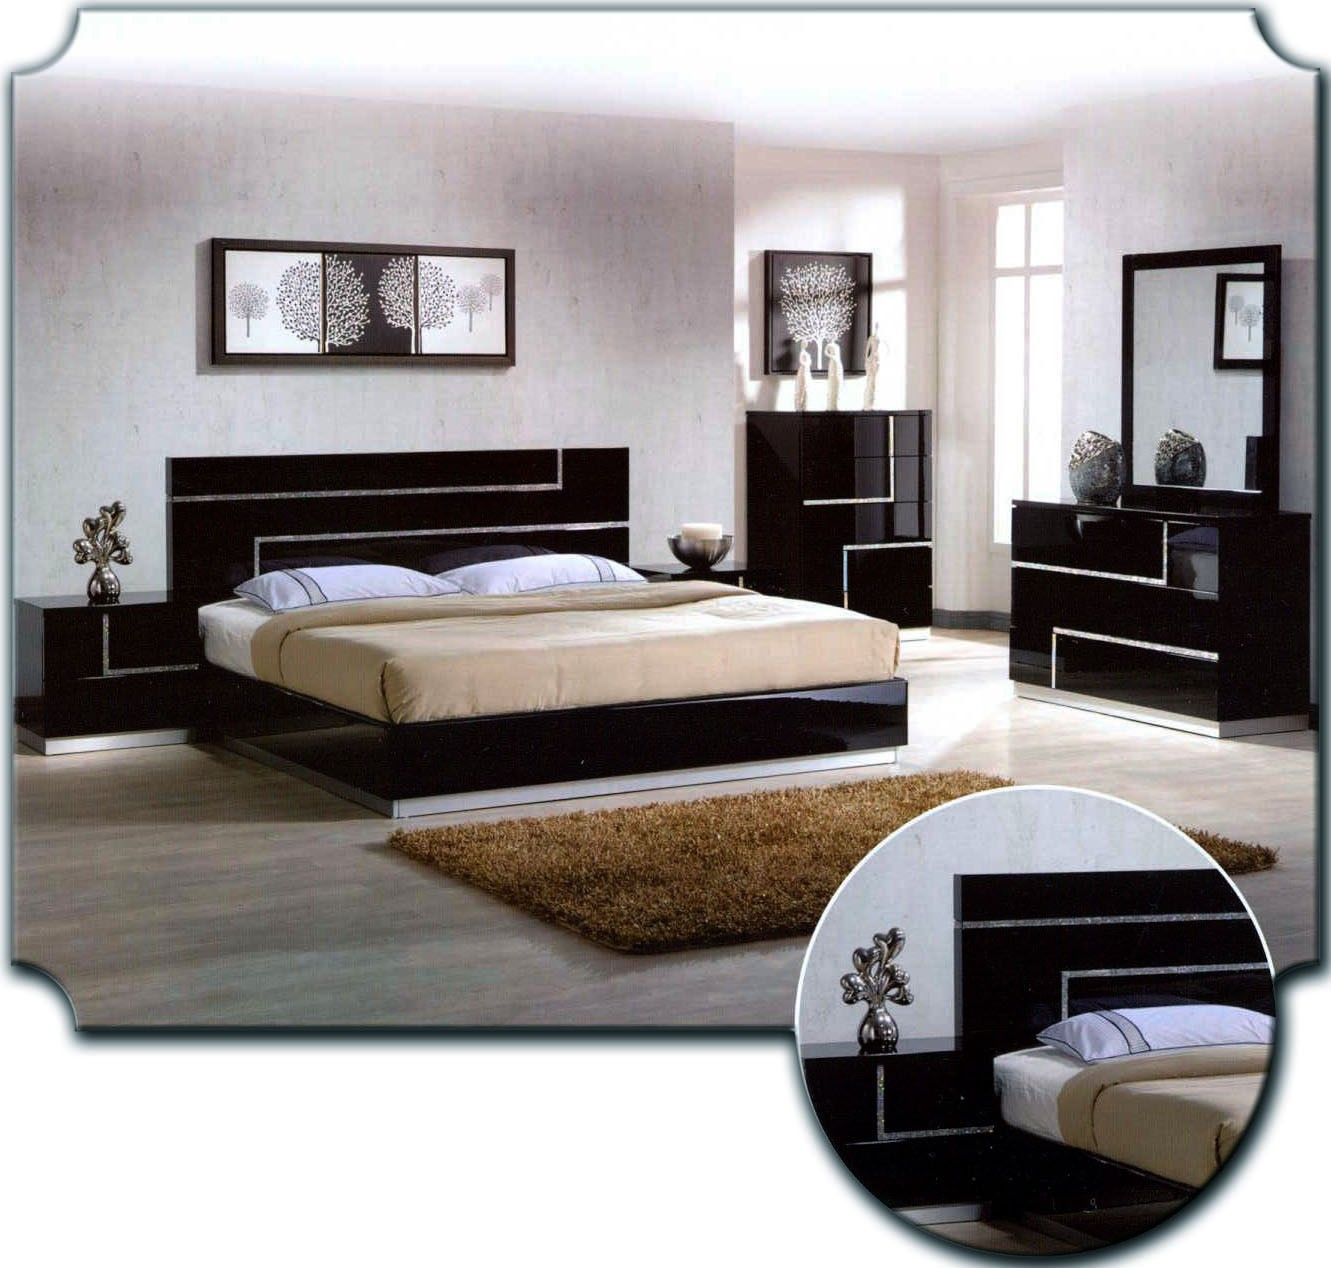 bed room furniture design. Bed Room Furniture Design. Bedroom Design Sets Photo - 3 Pinterest S